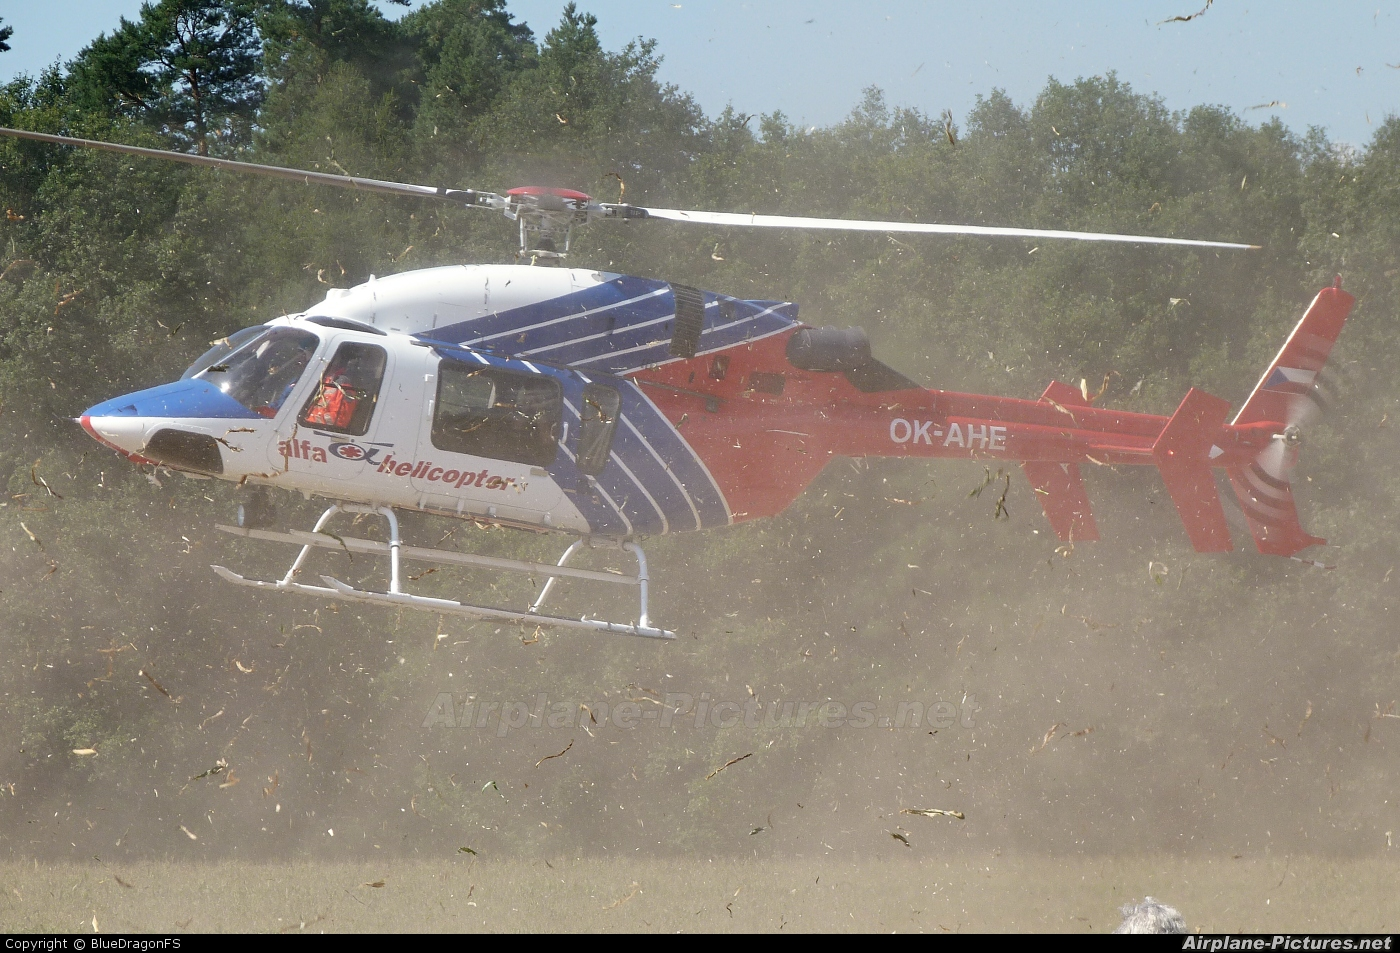 Alfa Helicopter OK-AHE aircraft at Off Airport - Czech Republic